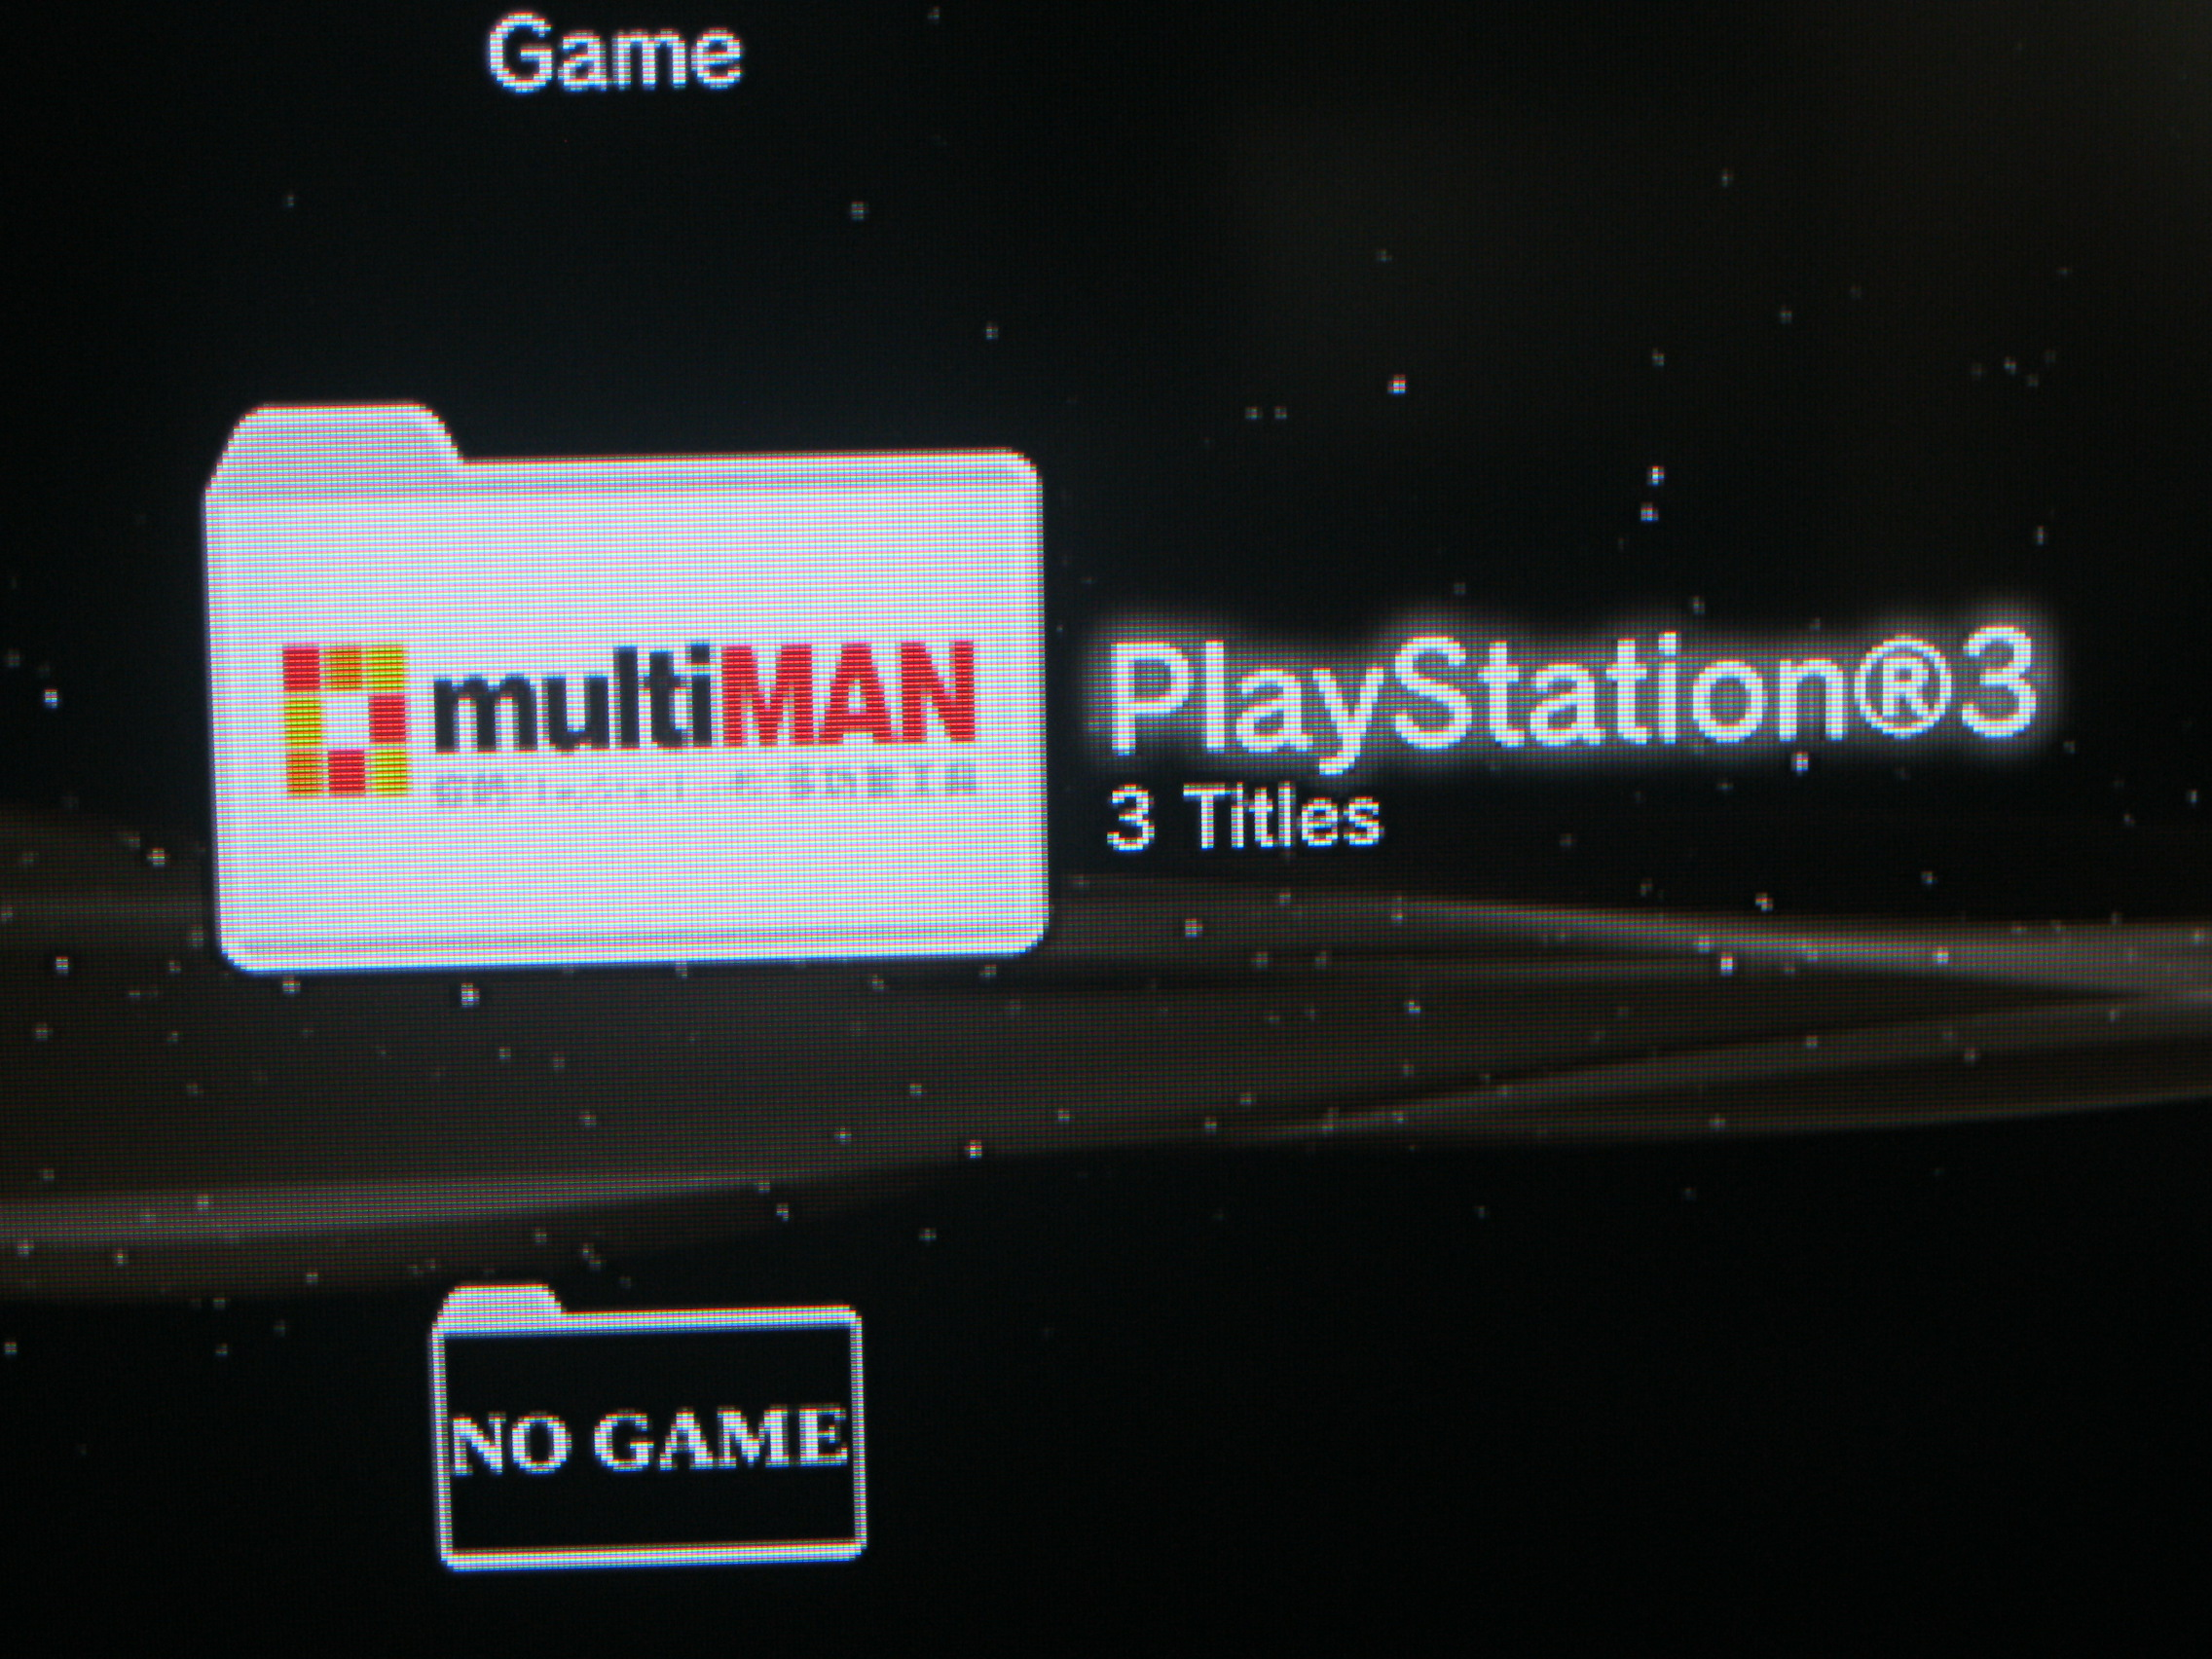 Ps3 multiman ver 2 05 00 bdemu included